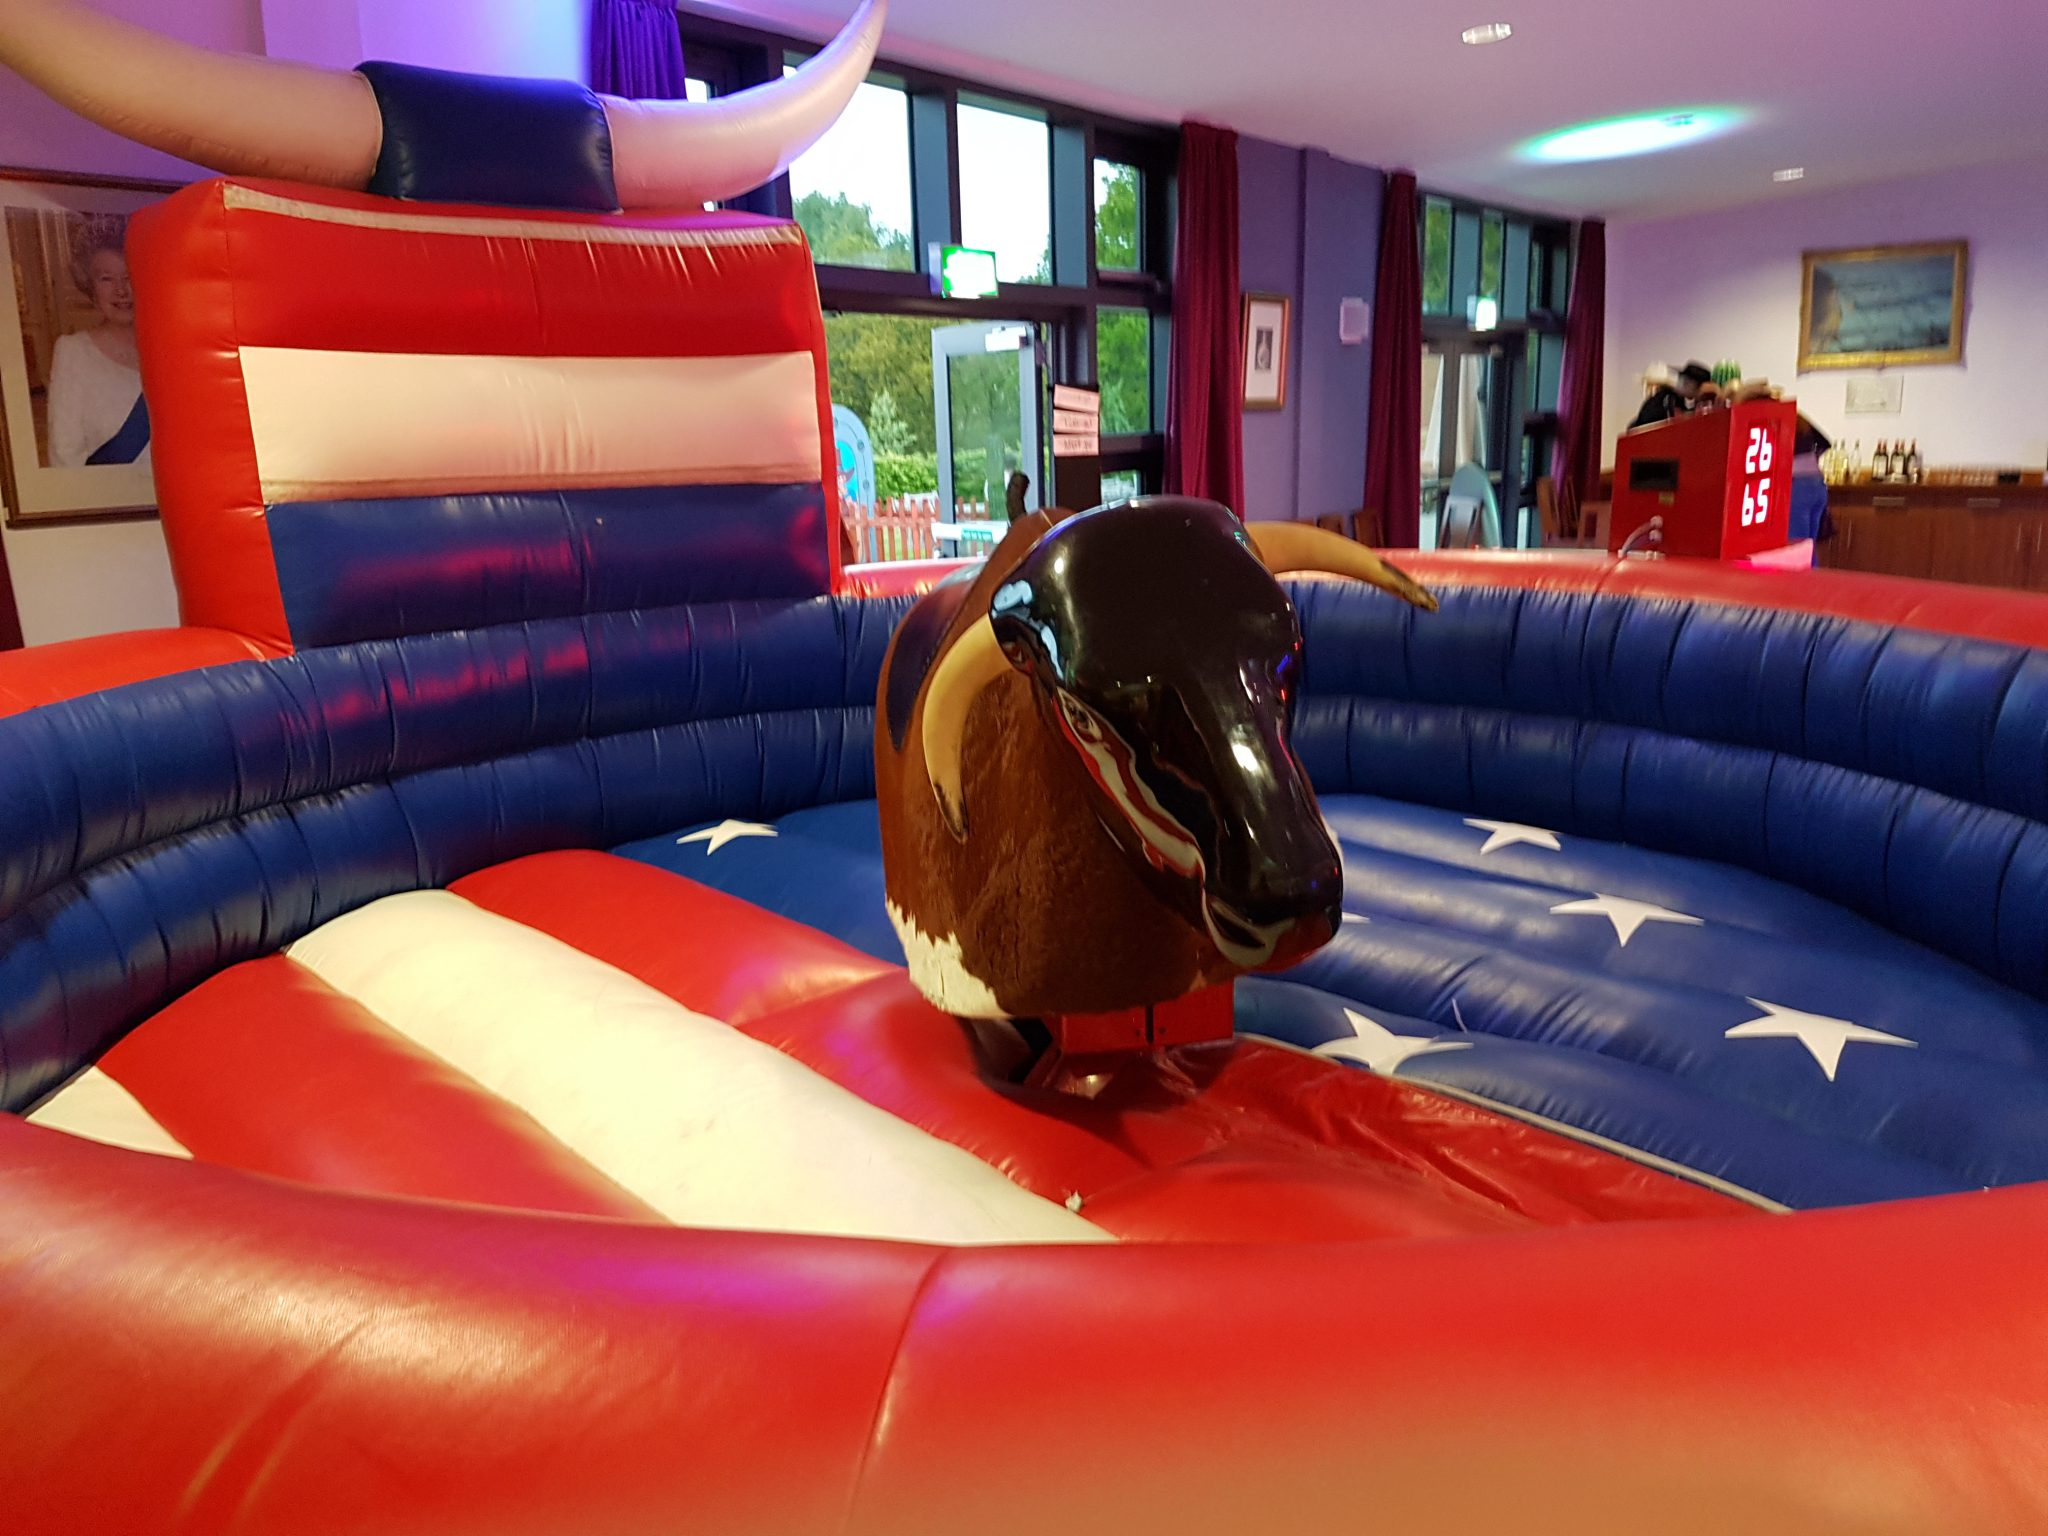 RODEO BULL HIRE - BUCKING BRONCO HIRE BEDFORDSHIRE